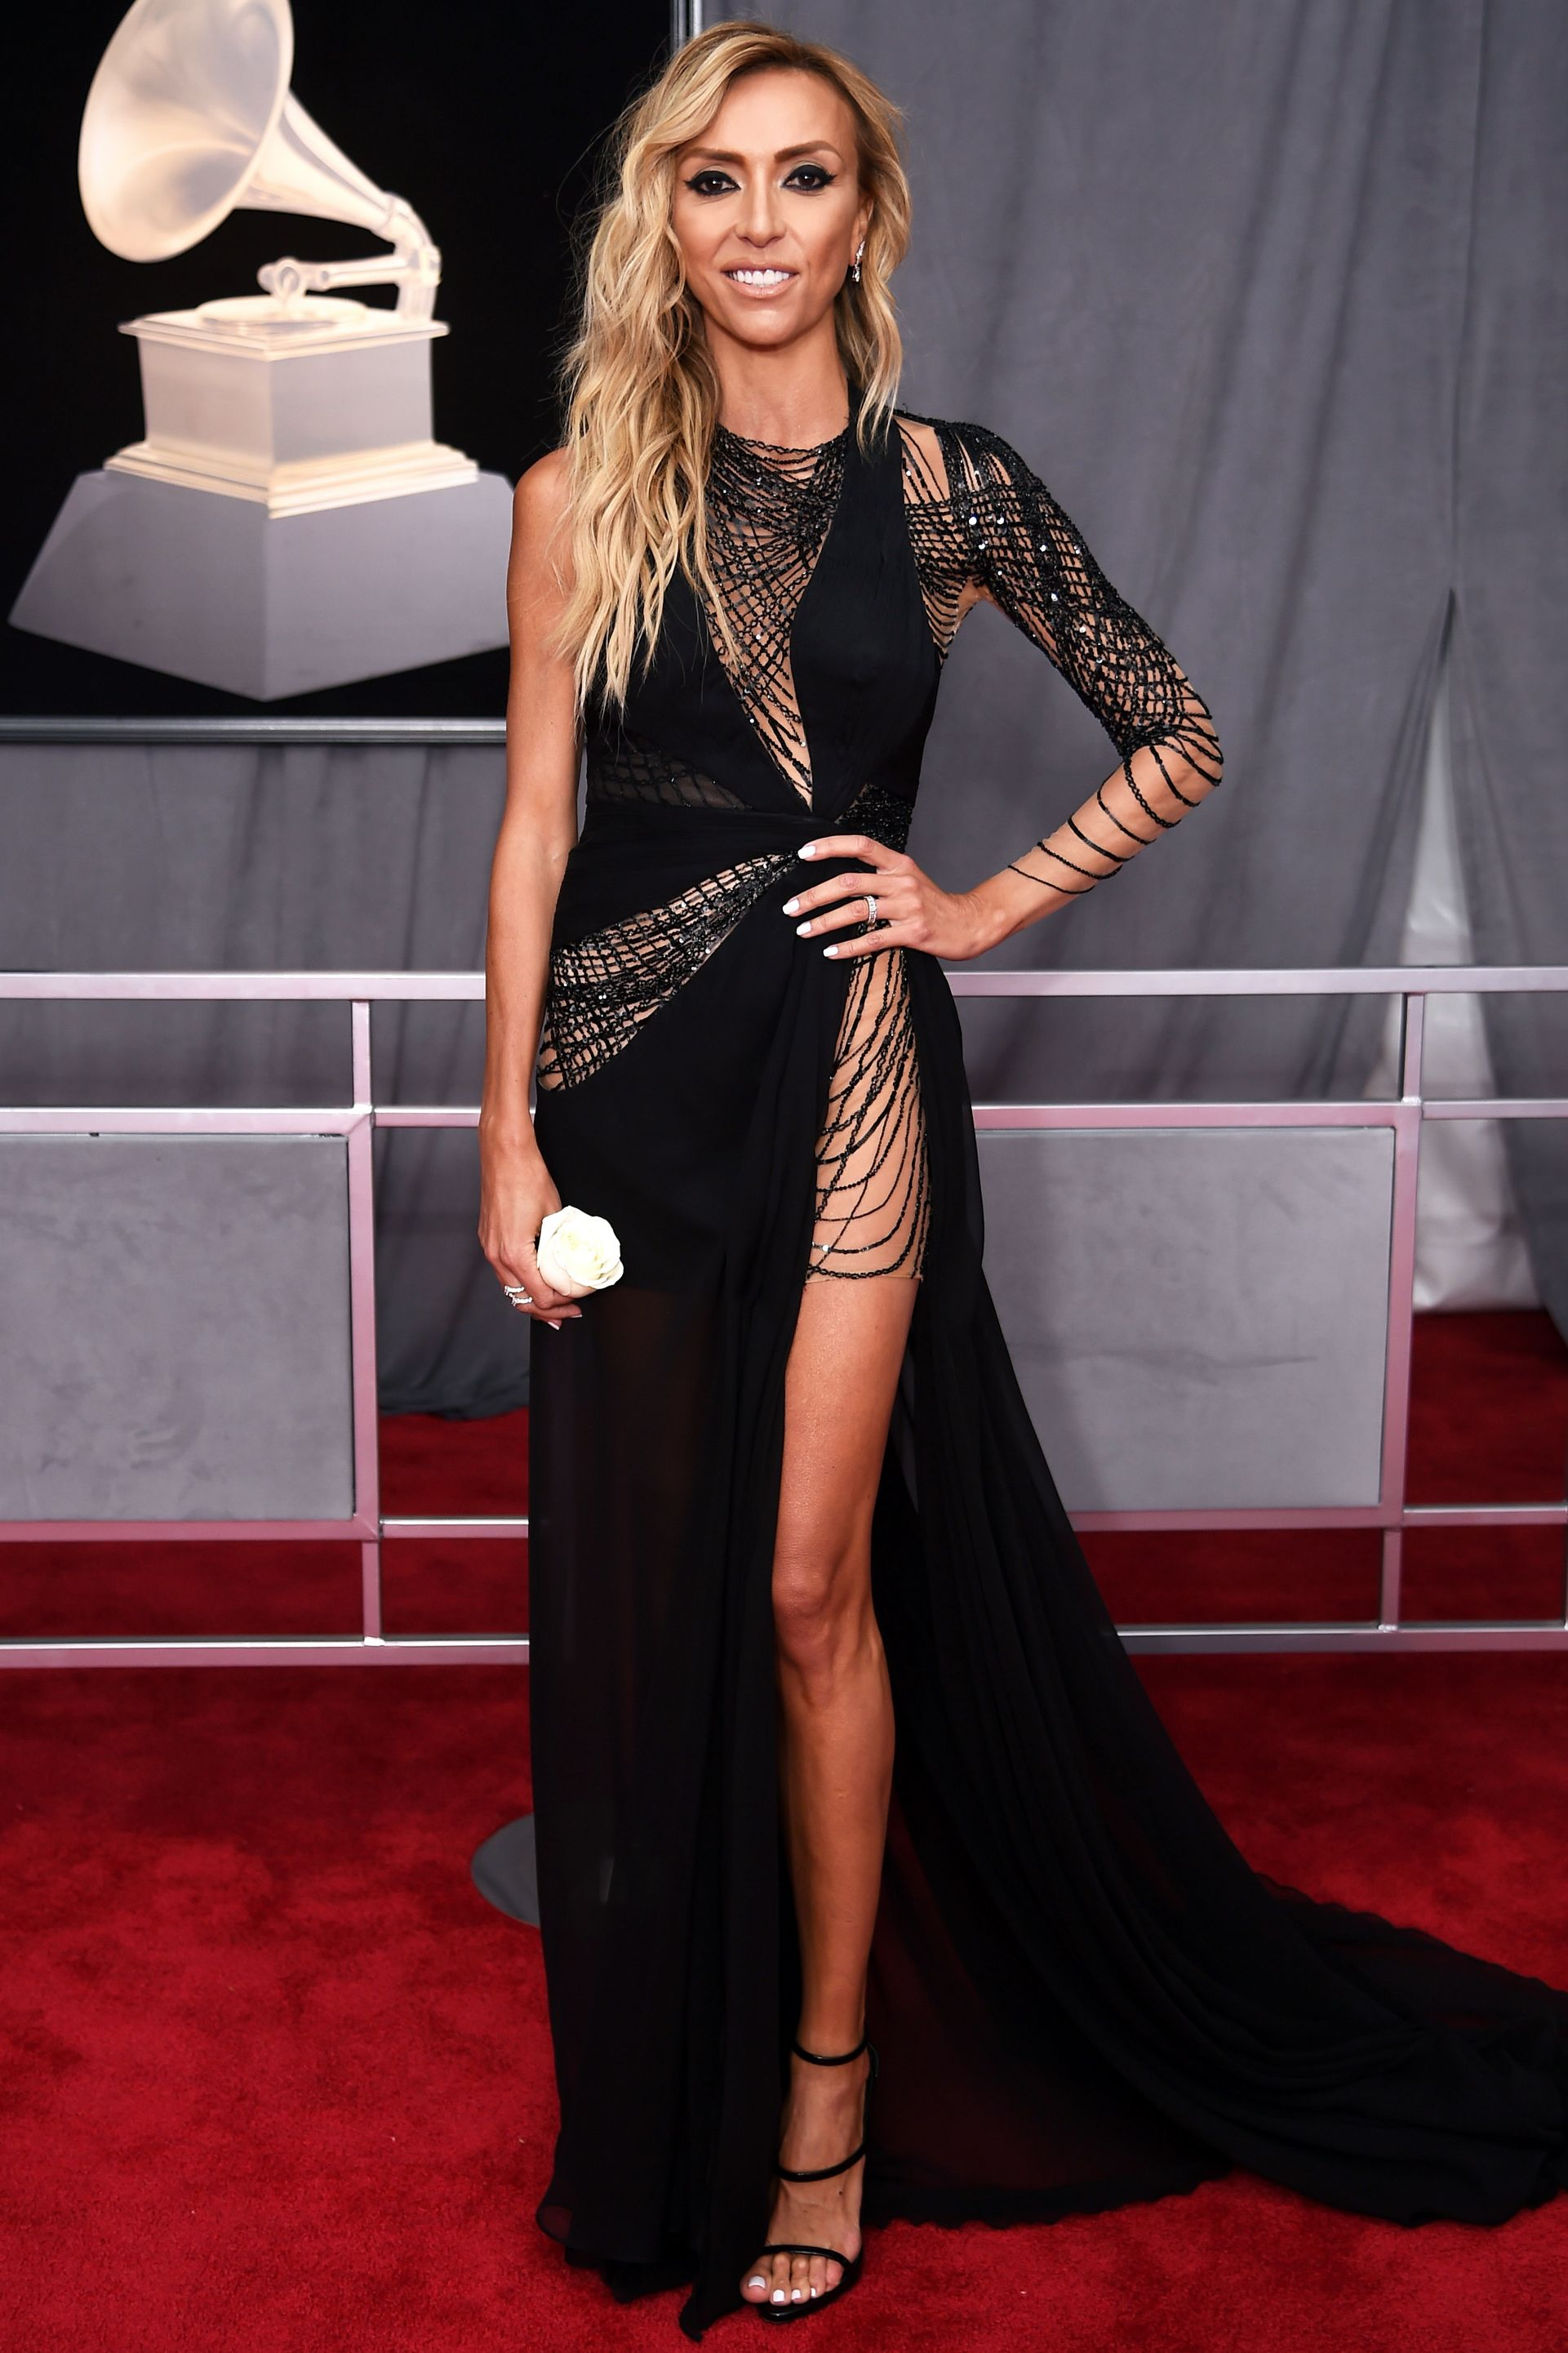 Grammys Red Carpet Fashion And All The Red Carpet Looks Celebrity Black Dress Grammy Fashion Female Celebrity Fashion [ 2882 x 1921 Pixel ]